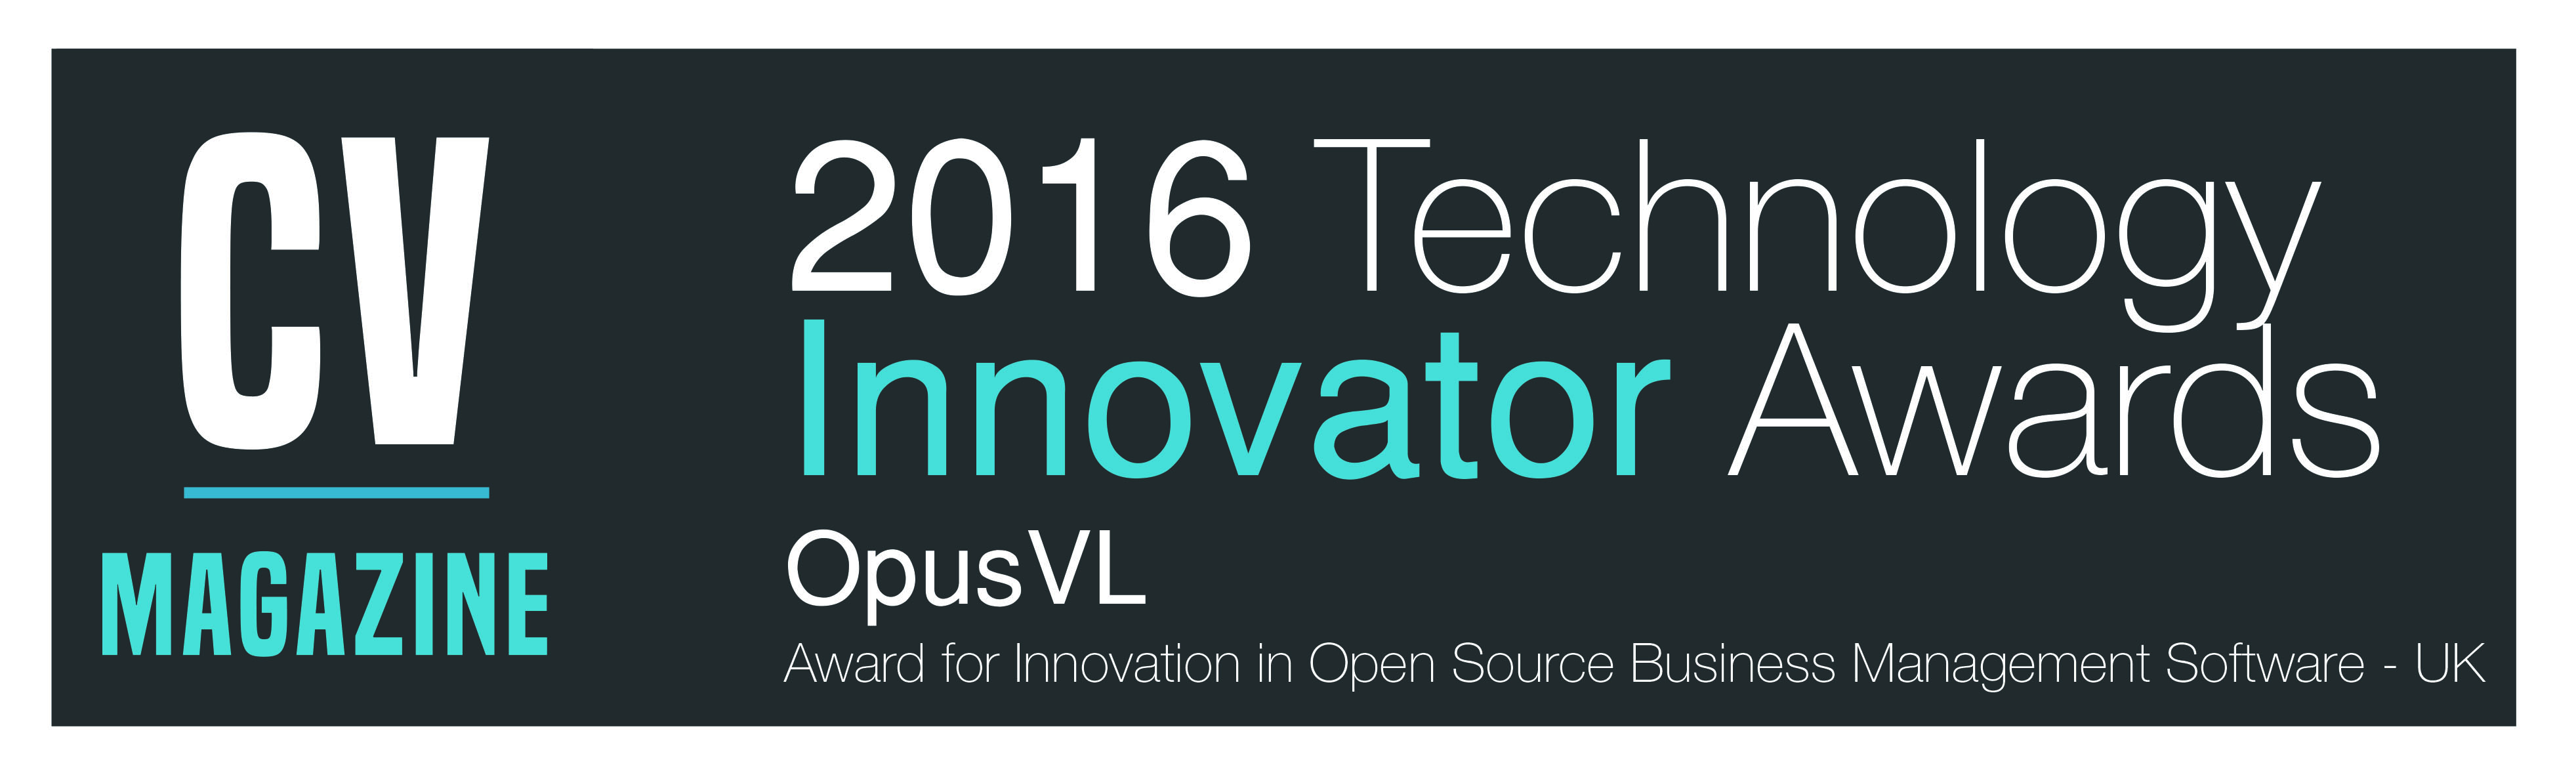 Corporate Vision Technology Innovator of the year award: OpusVL